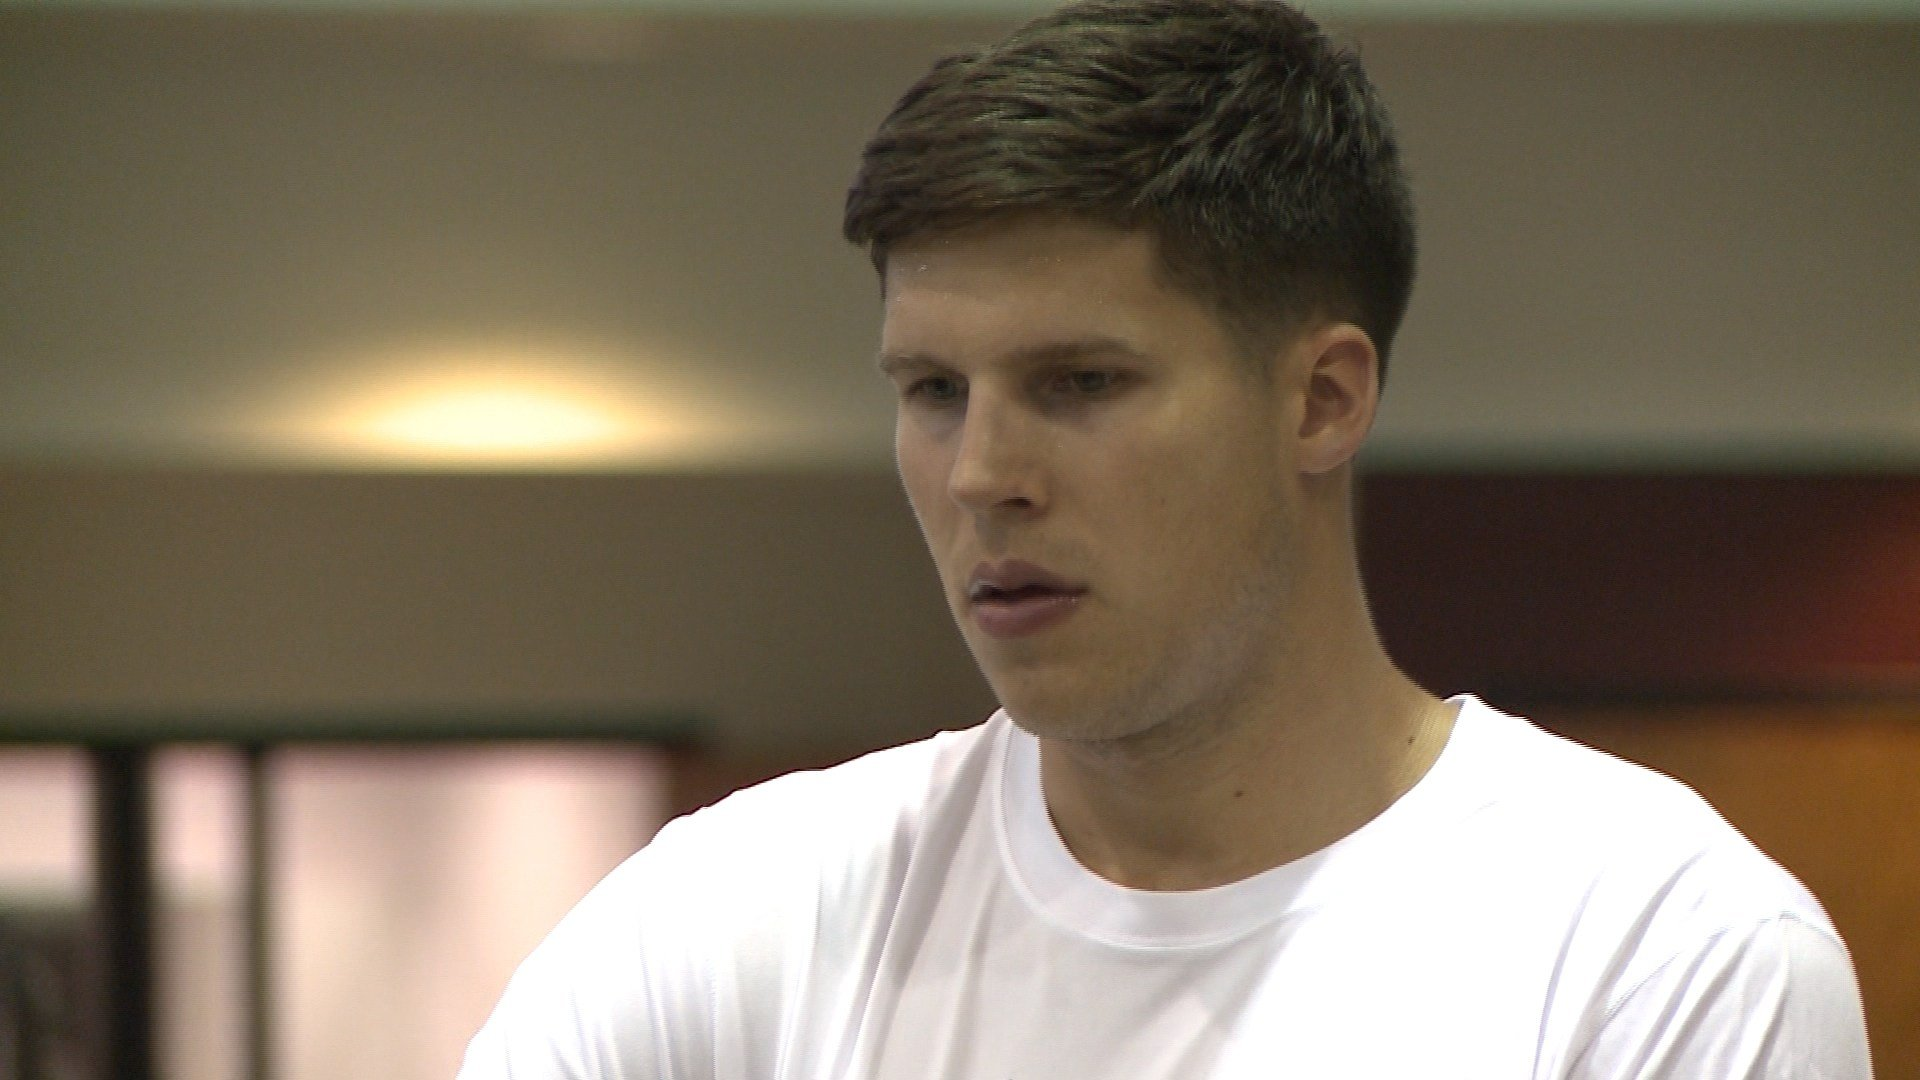 Doug McDermott was traded to the New York Knicks last week.